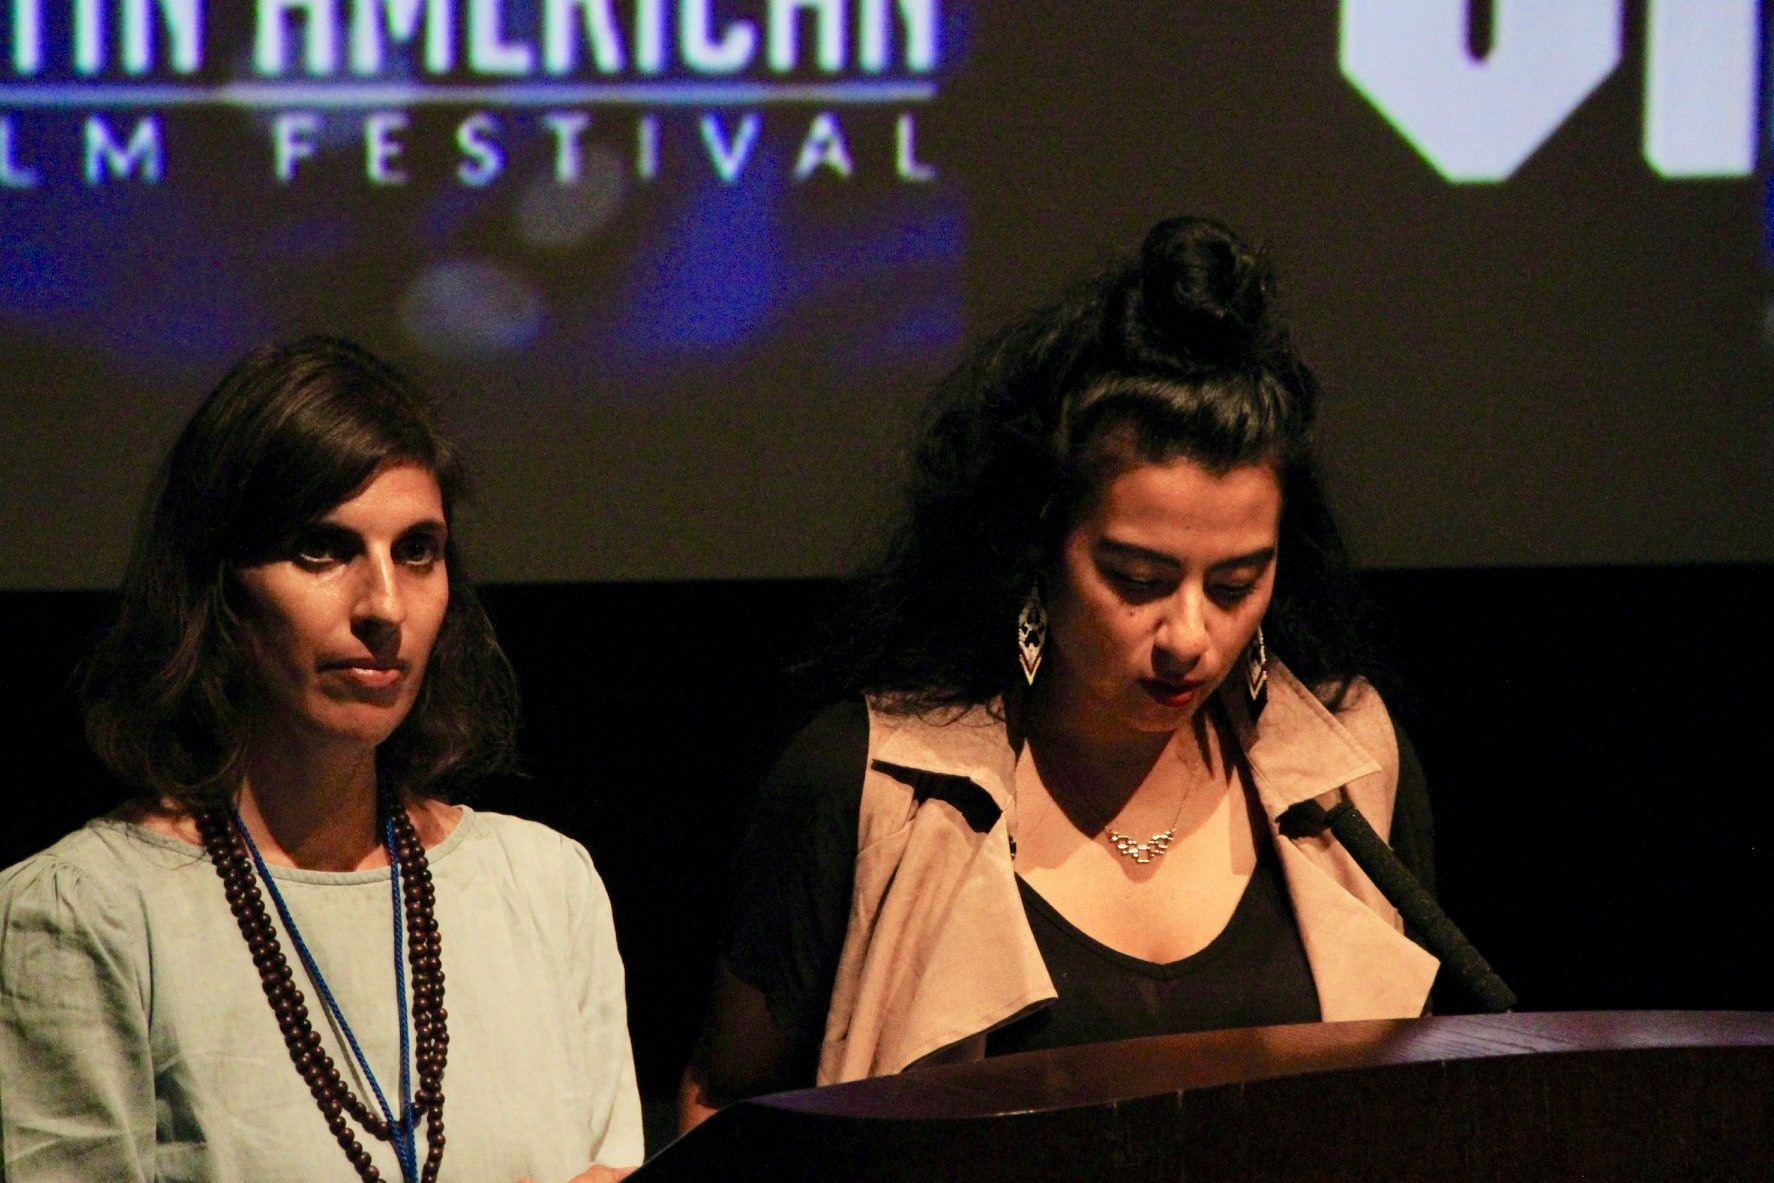 Presenting the films with Sonia Medel. Photo by Fatima Jaffer